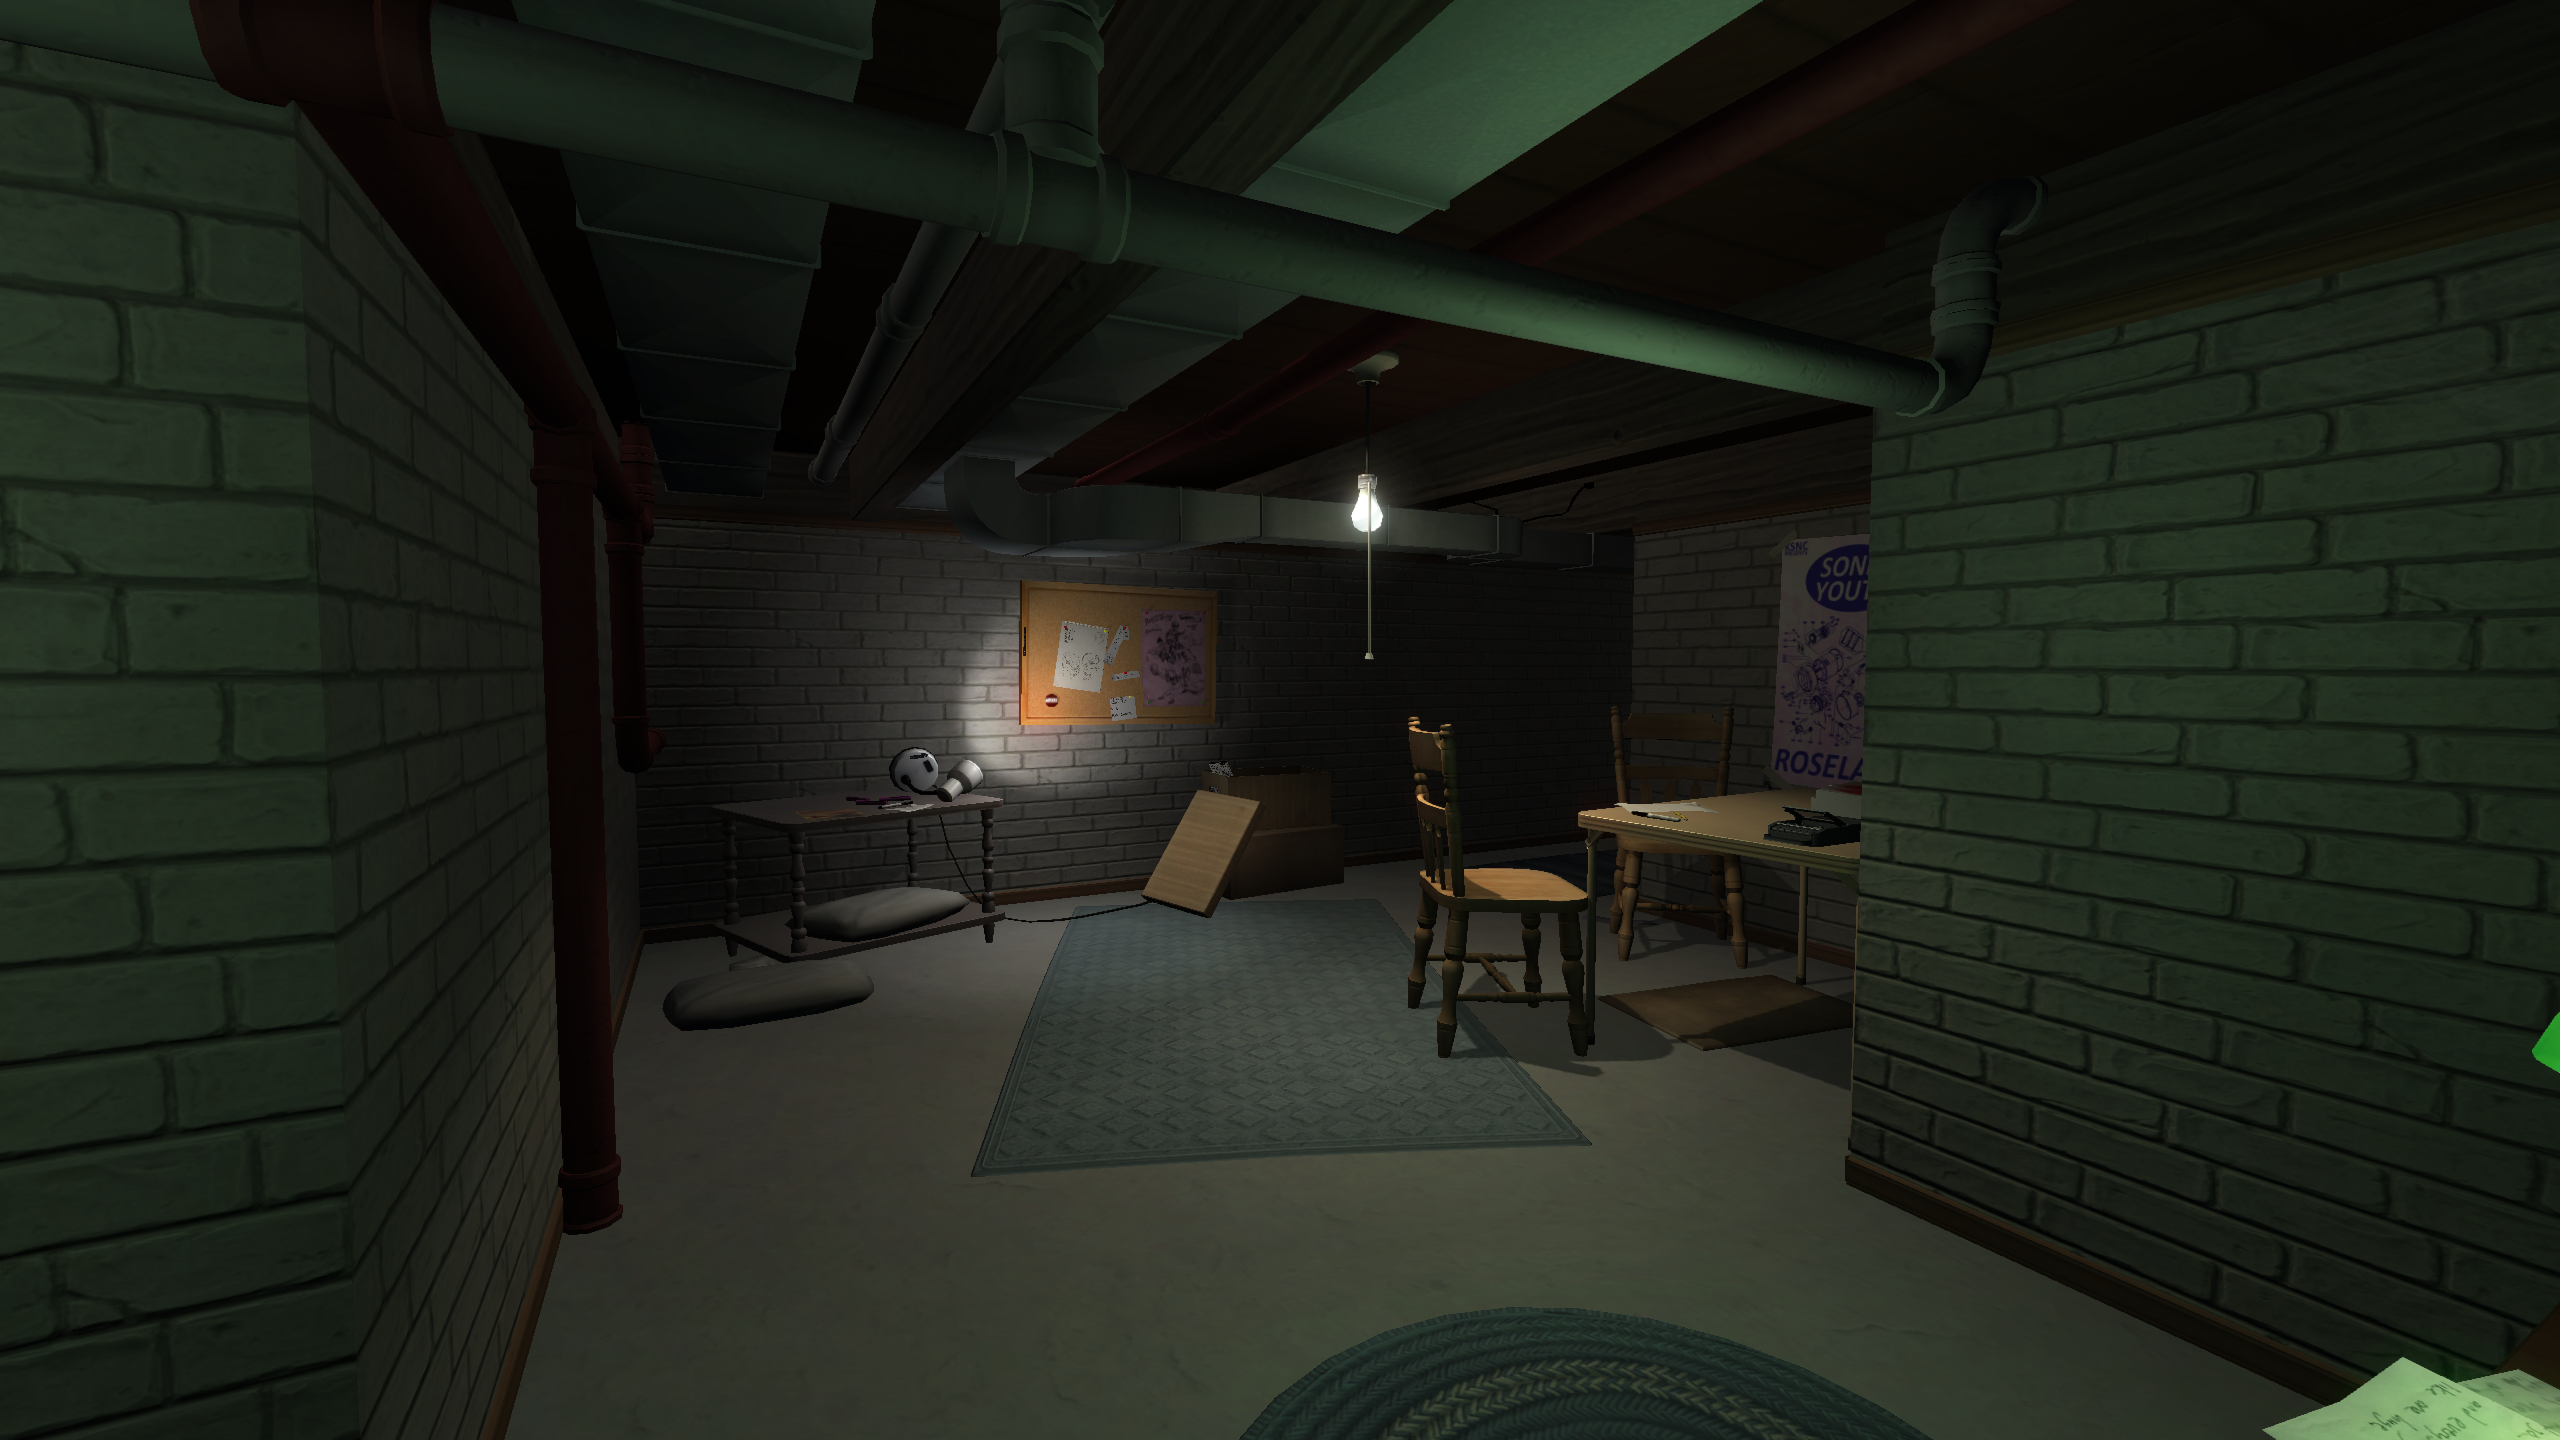 Gone Home review: Simplicity is where the heart is